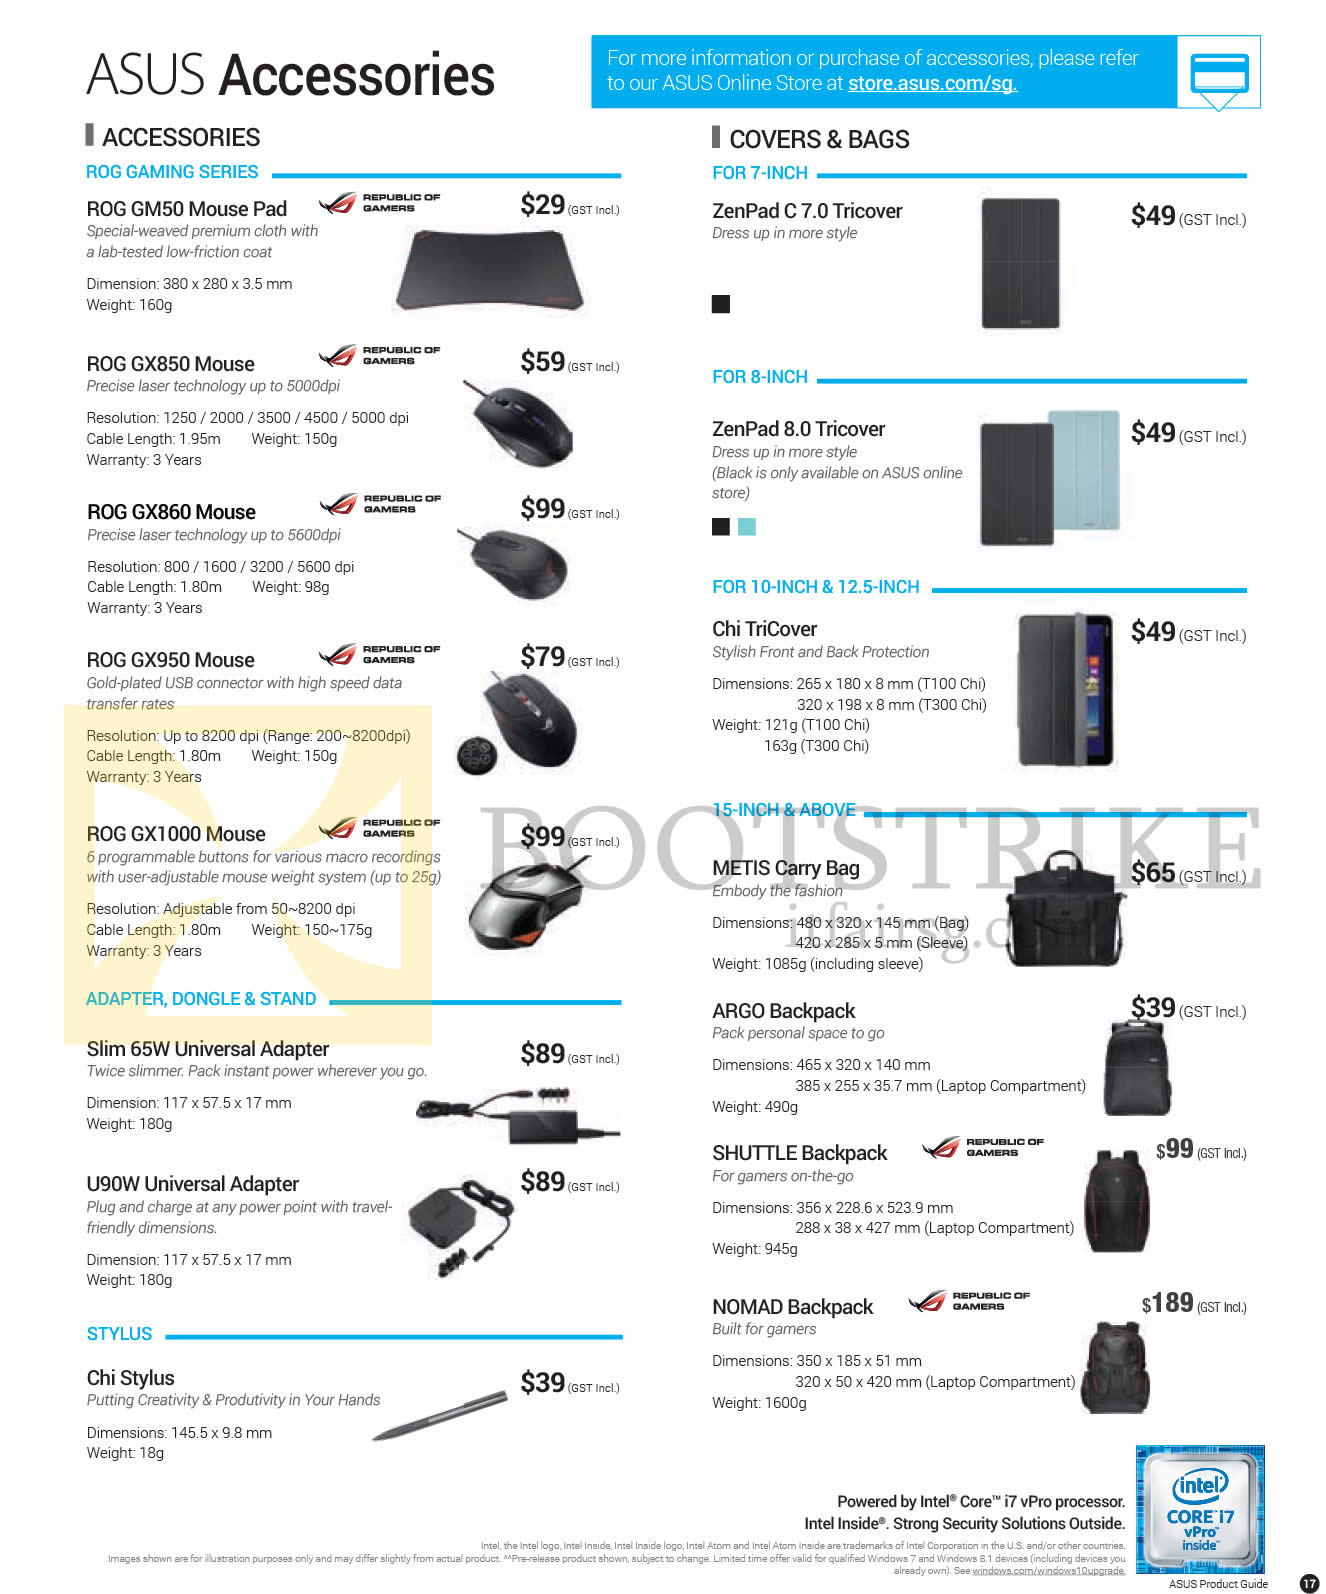 PC SHOW 2016 price list image brochure of ASUS Accessories ROG GM50 Mouse Pad, GX850, GX860, GX950, GX1000 Mouse, Slim 65W Universal Adapter, U90W, Chi Stylus, ZenPad 8.0 Tricover, METIS Carry Bag, ARGO Backpack